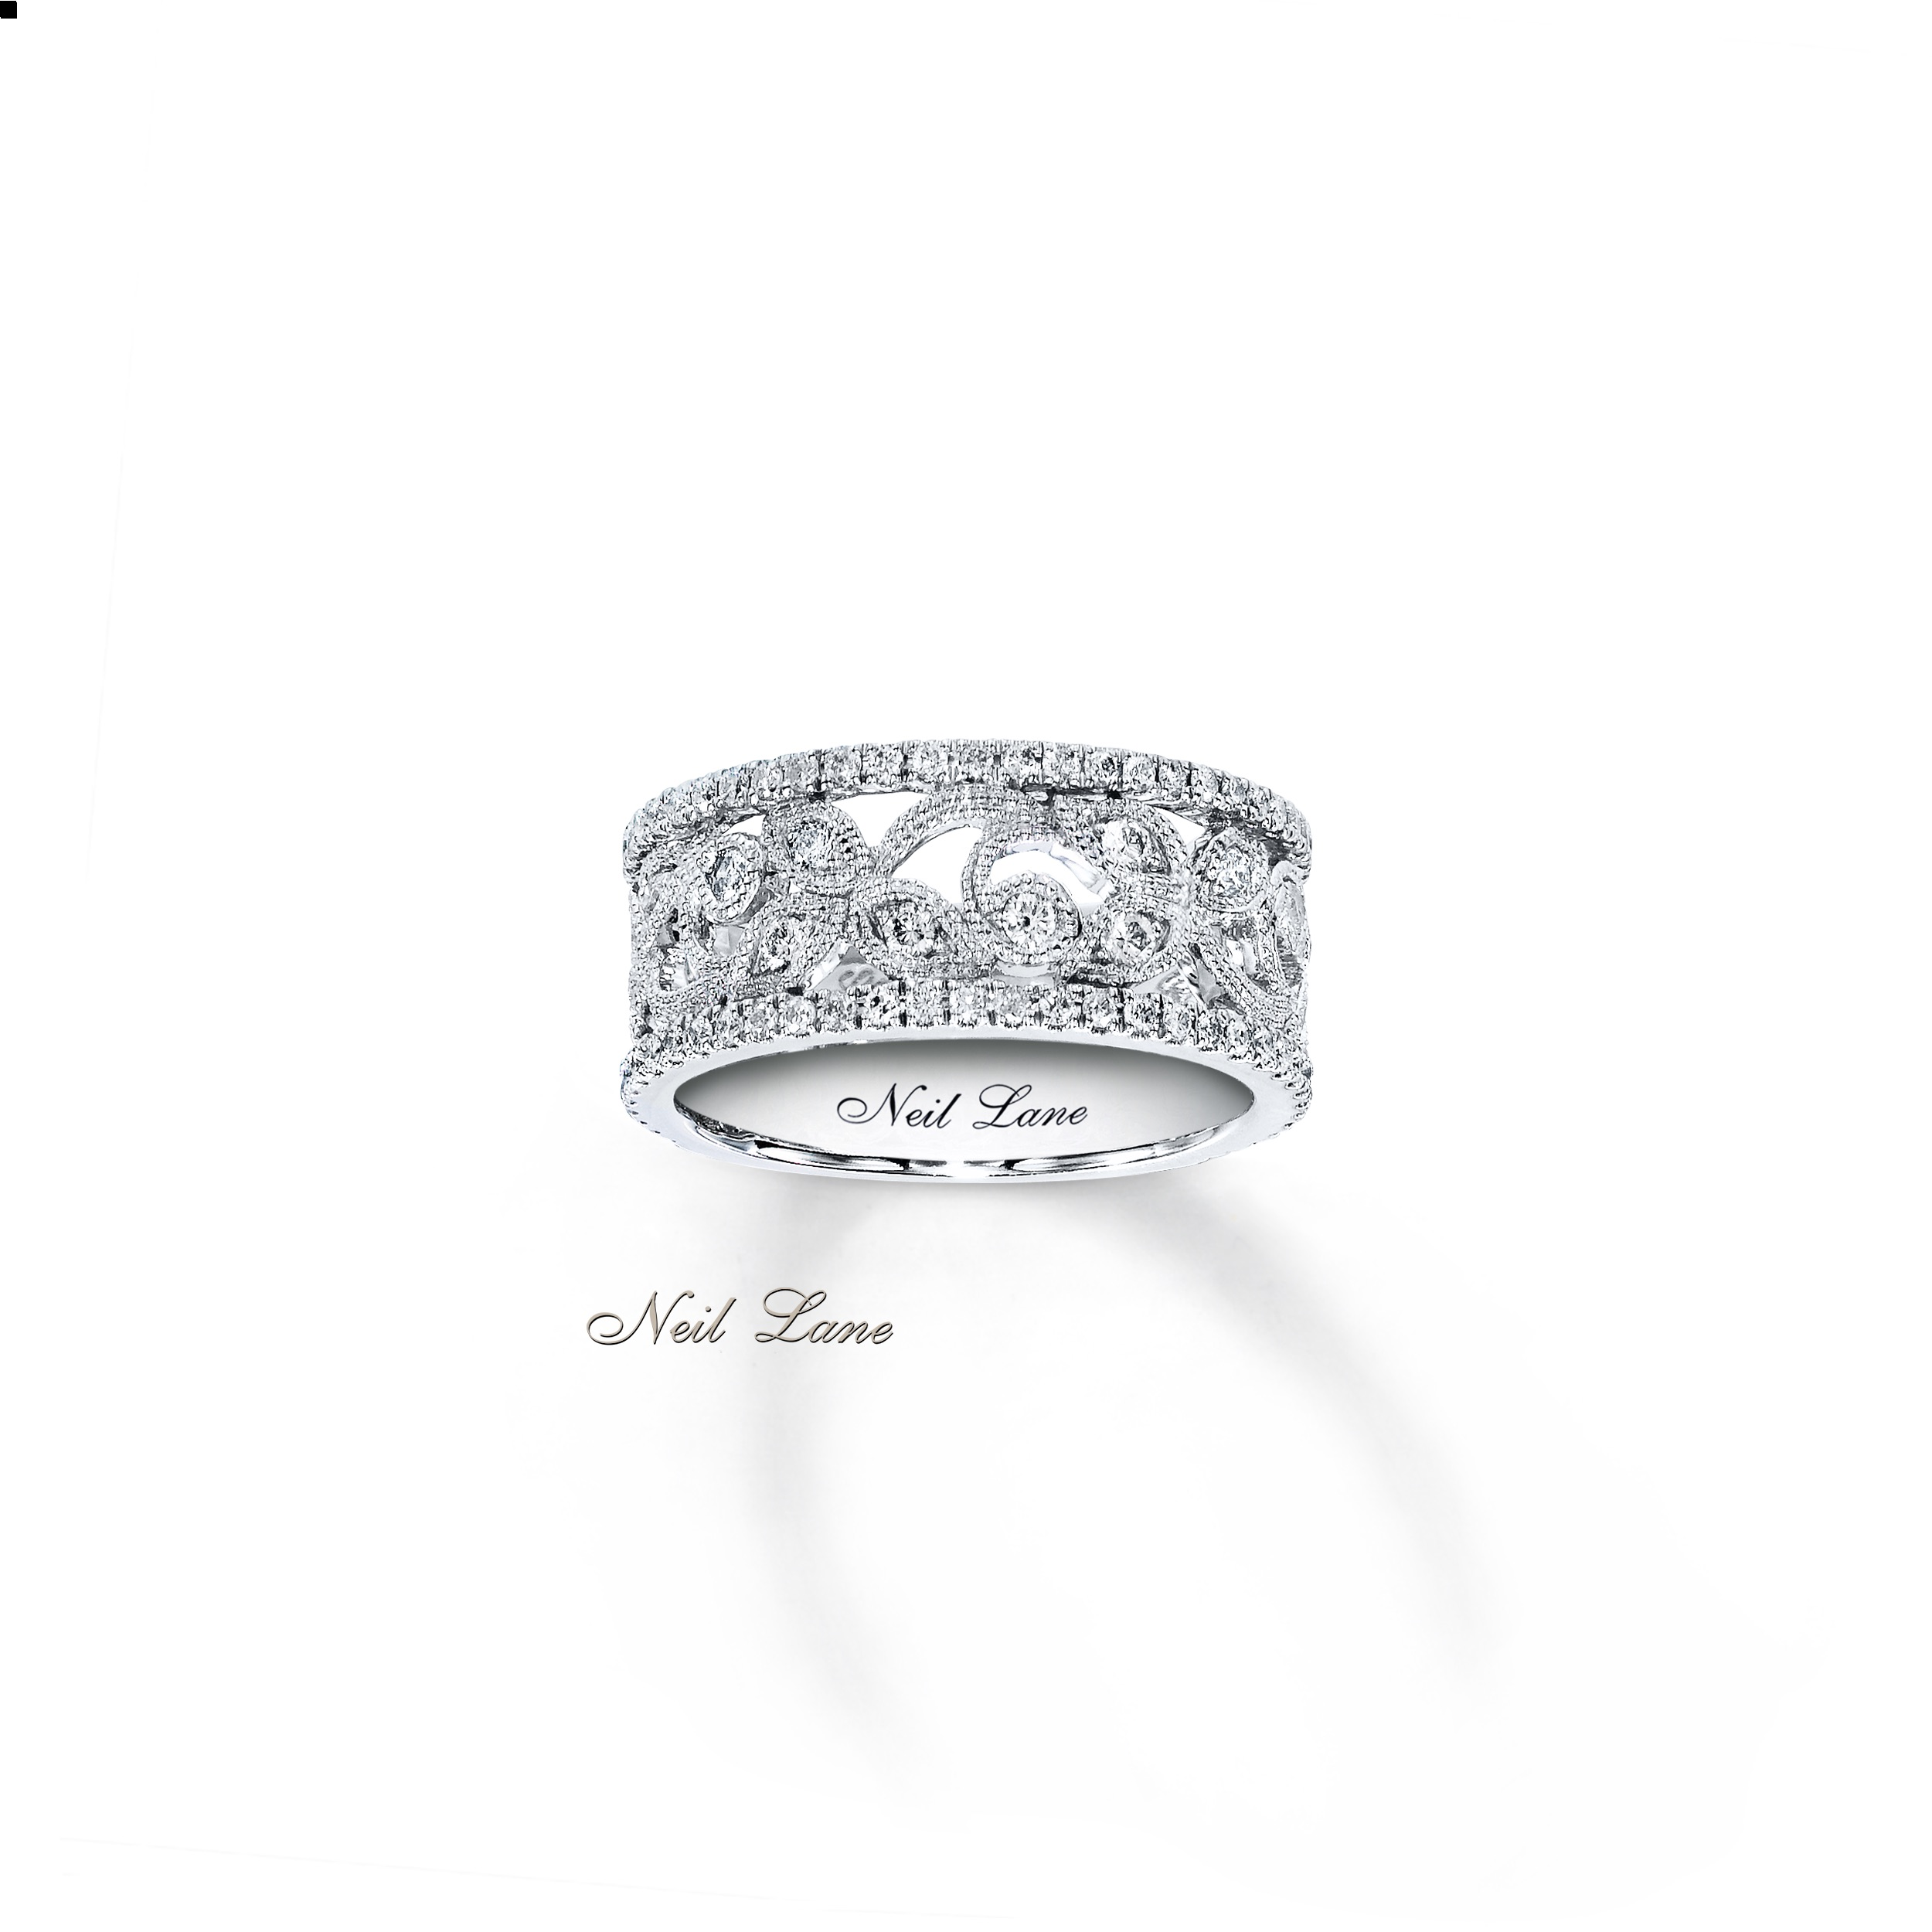 set gold my bridal kay lane white of at diamond engagement neil rings luxury jewelers inspirational